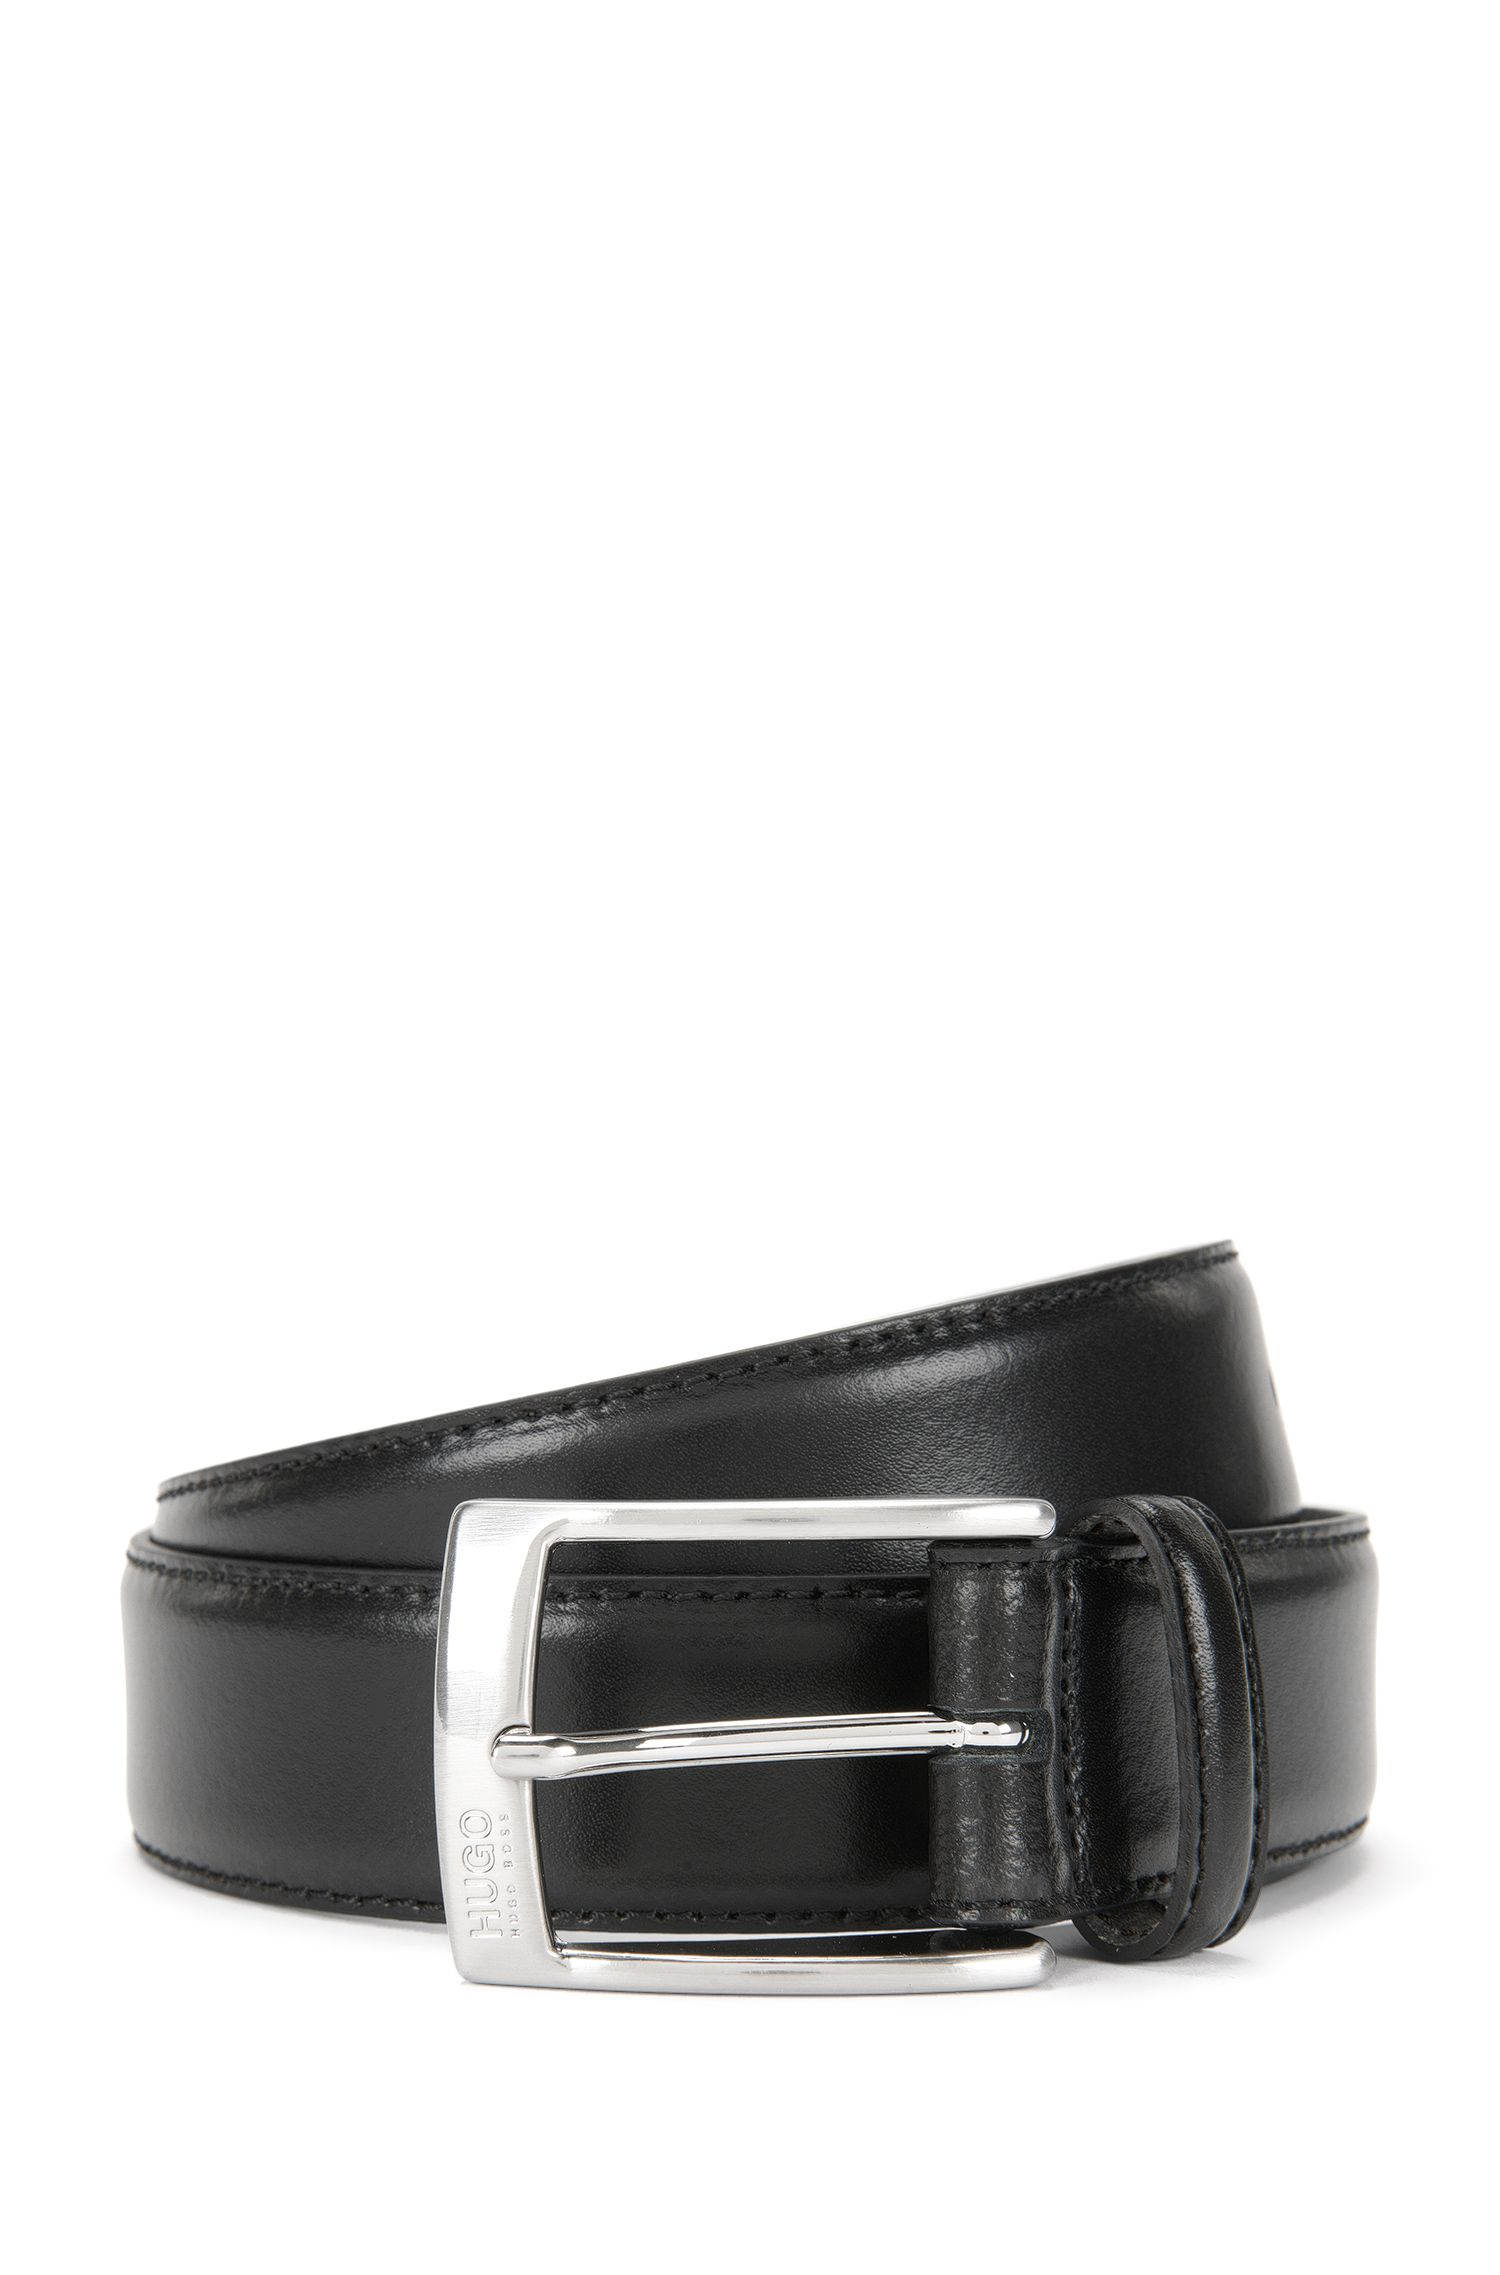 Leather belt with polished pin buckle